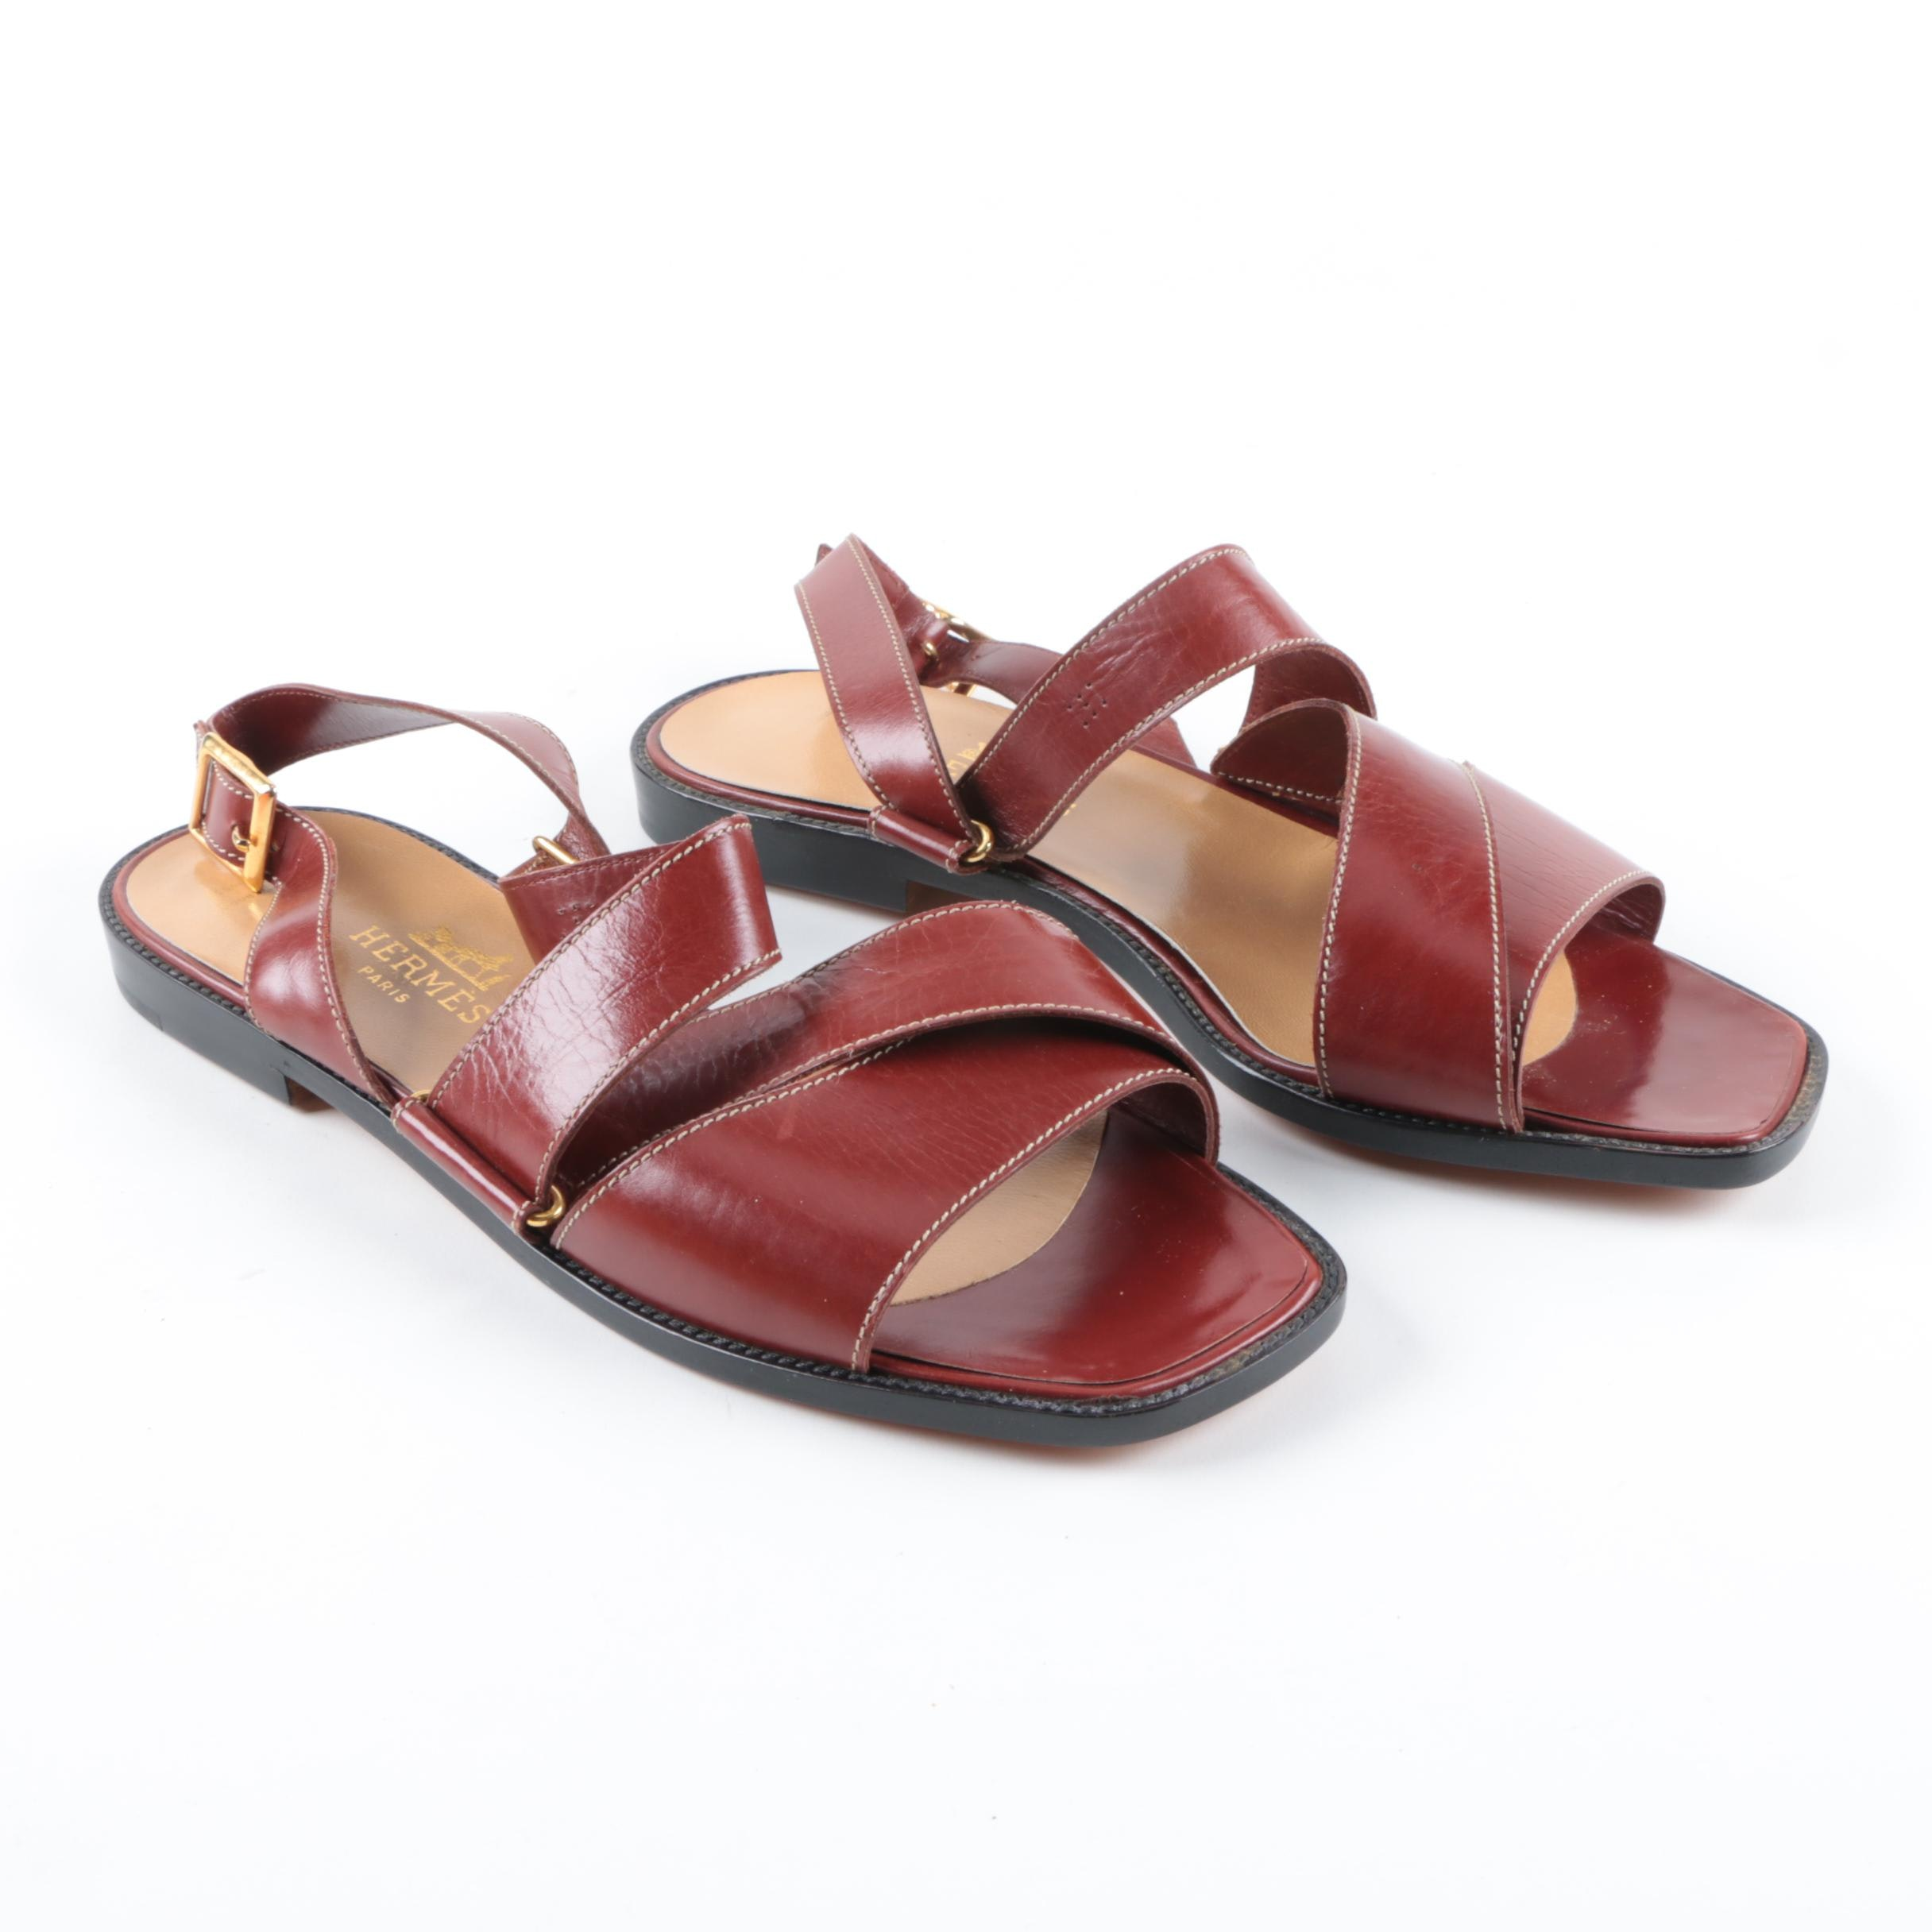 Hermès Red Leather Sandals